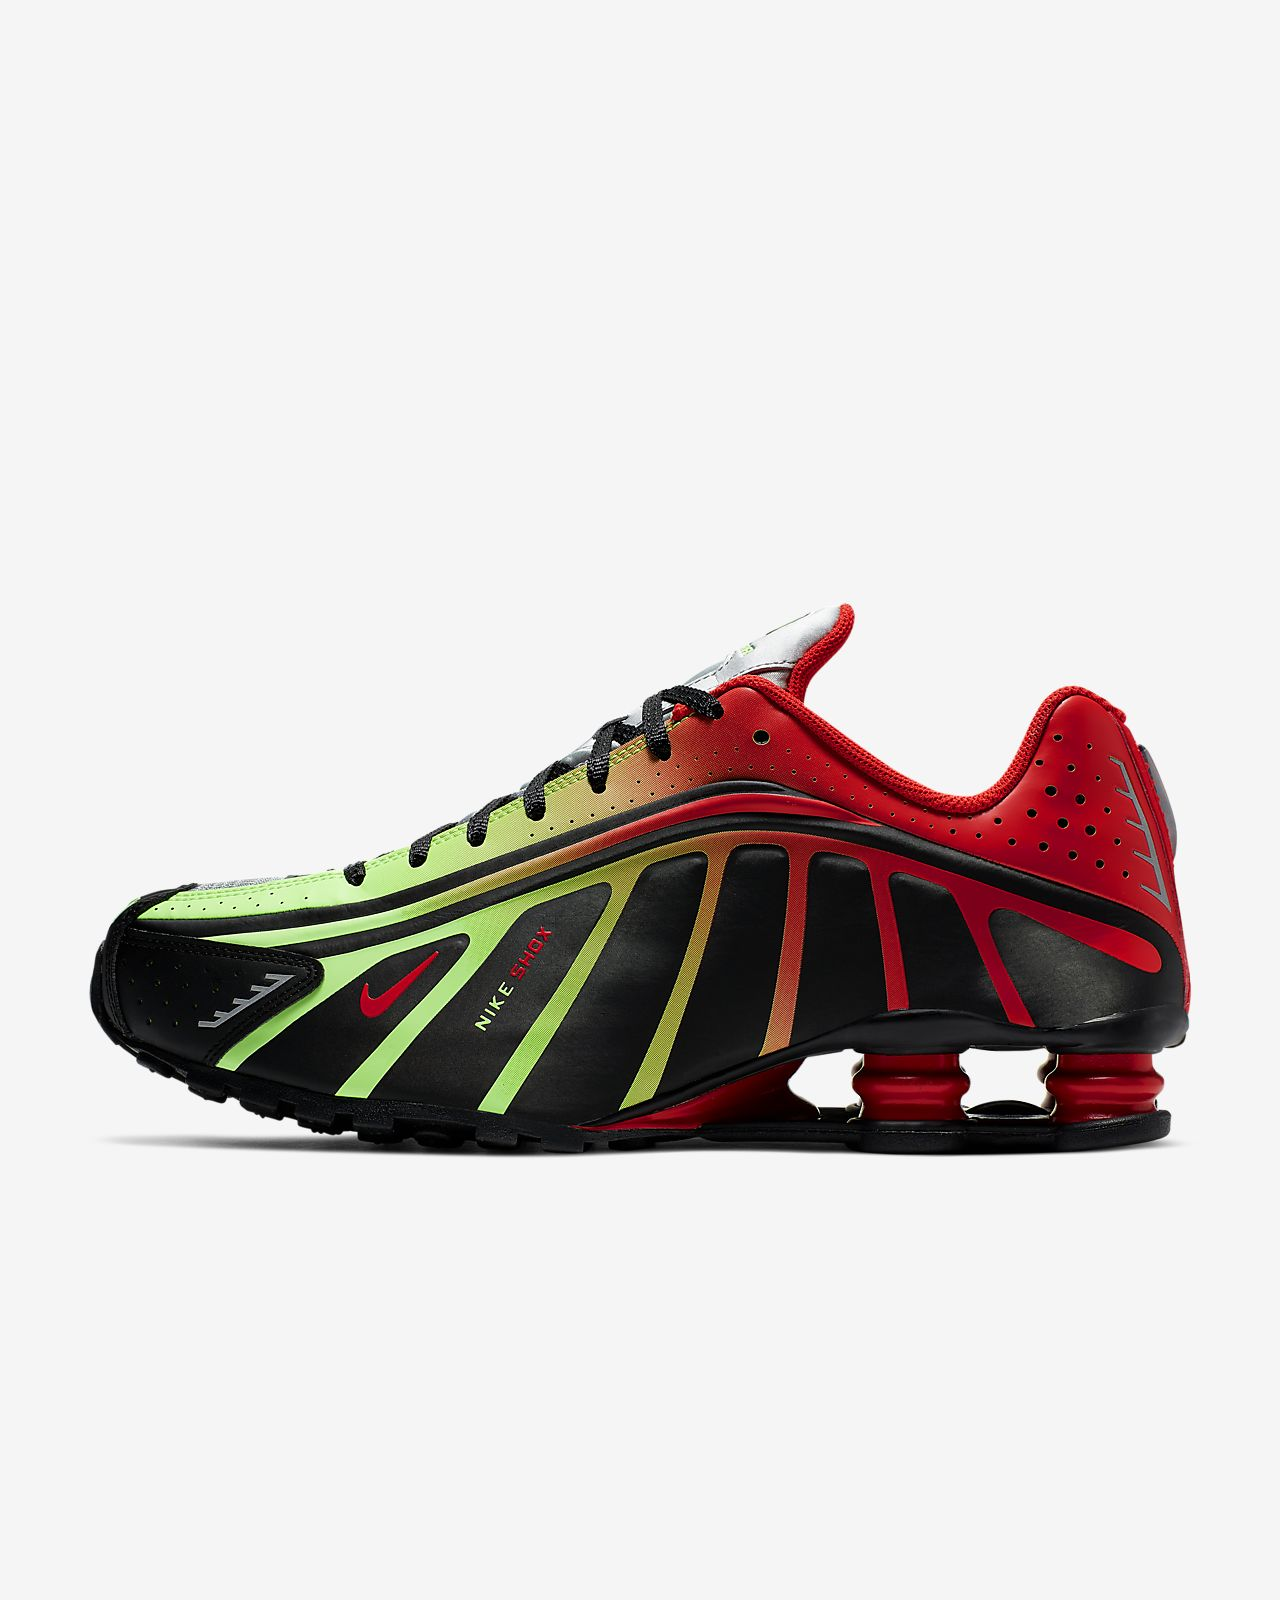 the latest 5d678 8df30 ... Nike Shox R4 Neymar Jr. Shoe